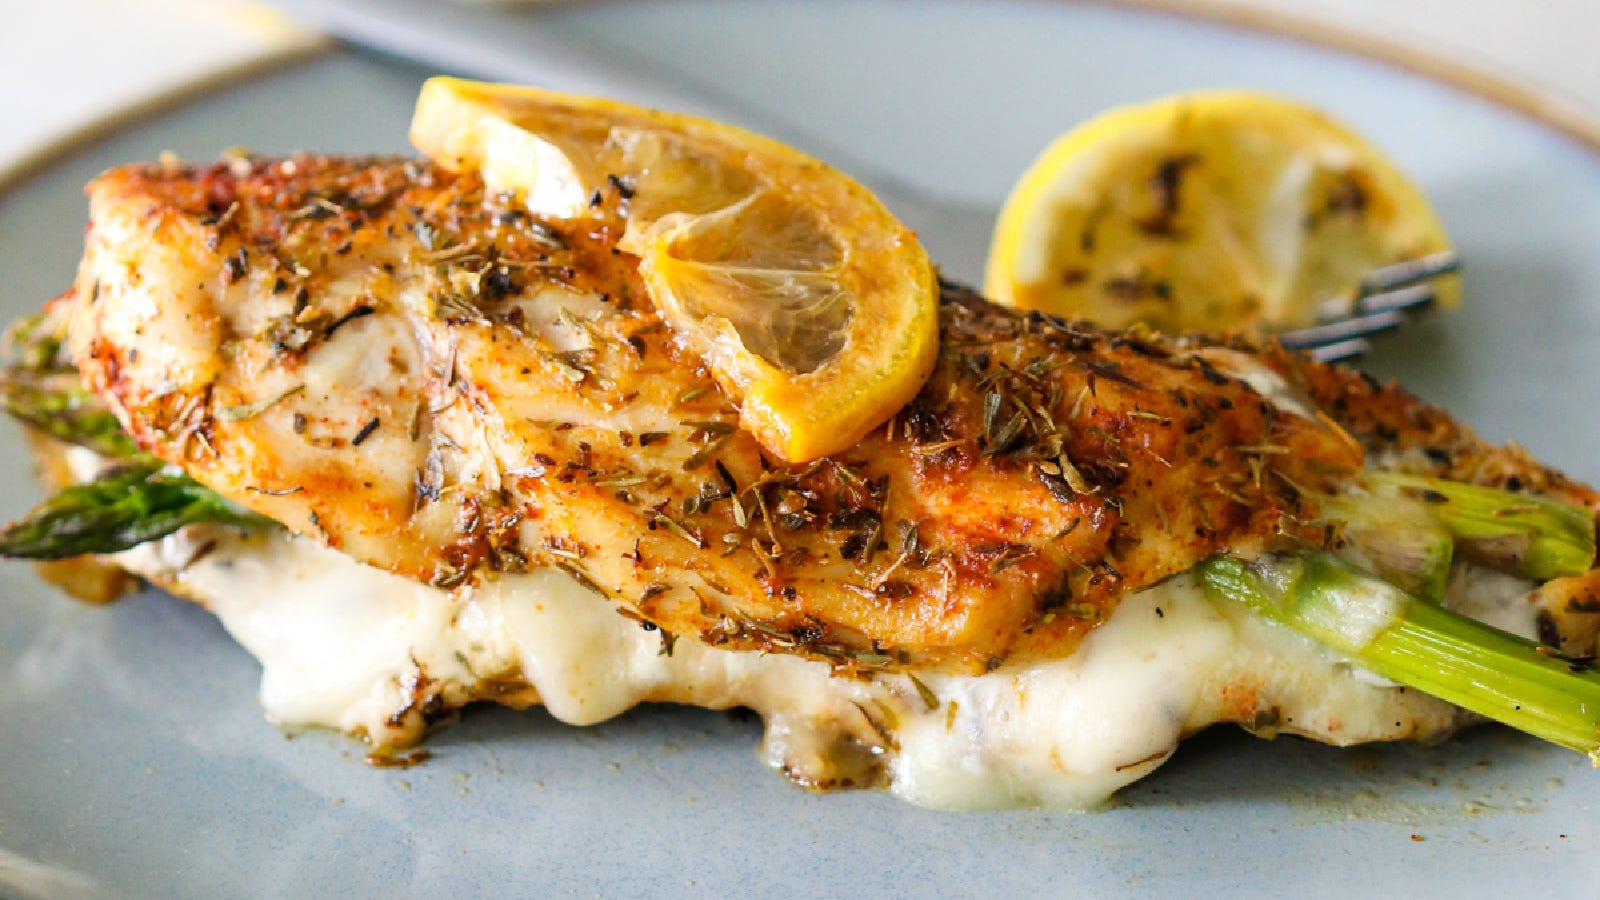 An asparagus and cheese stuffed chicken breast, coated with herbs and topped with roasted lemon slices.